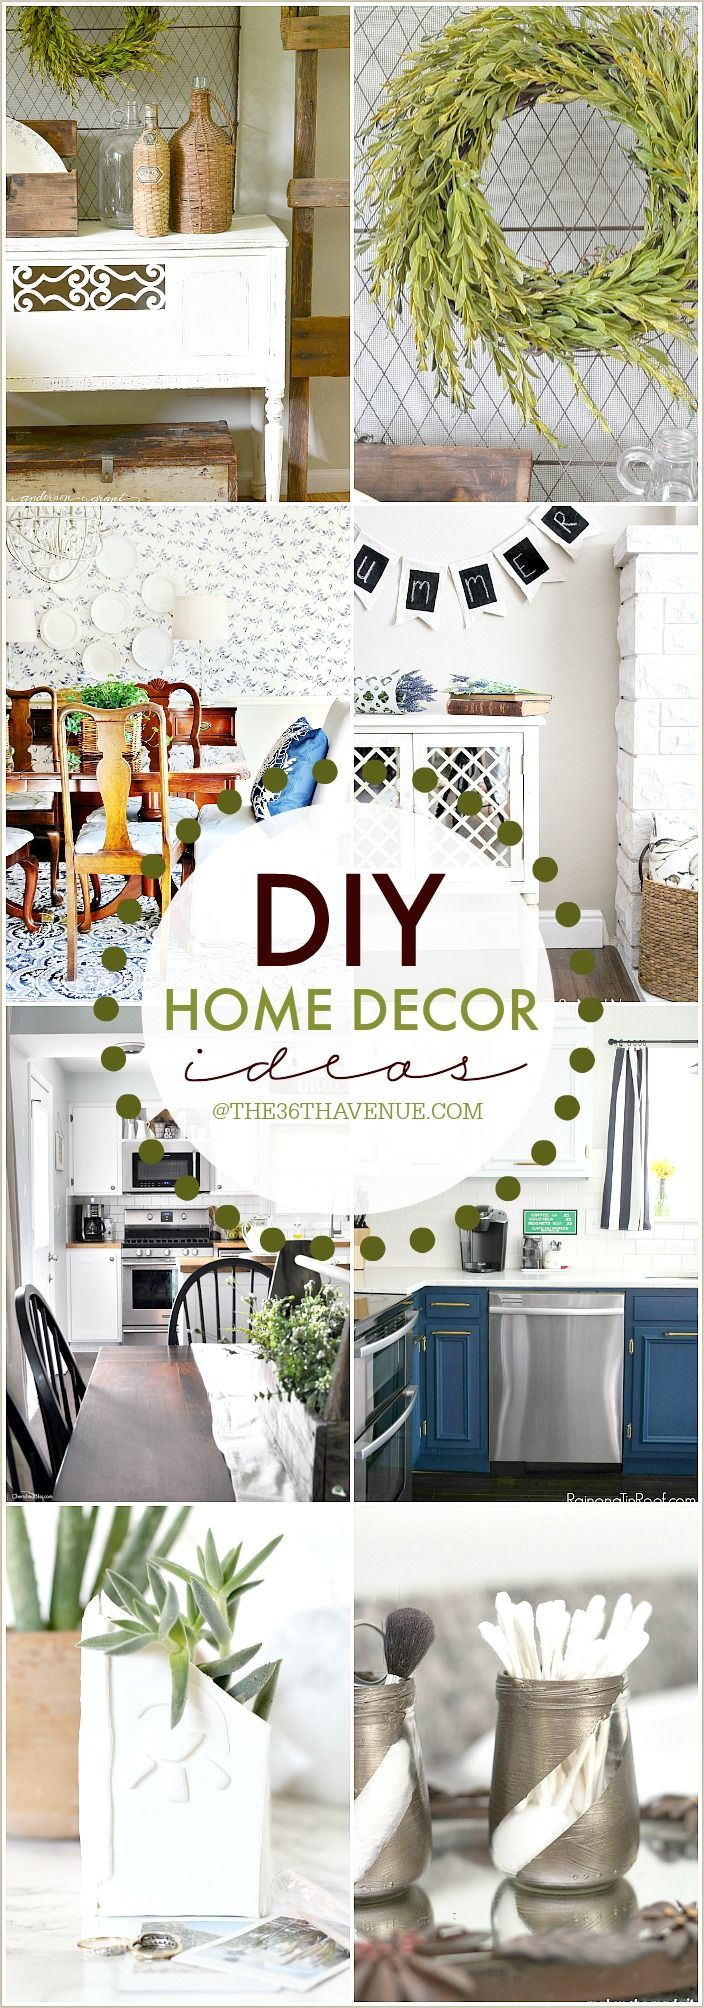 20 DIY Home Decor Ideas | Hardware, Craft and House